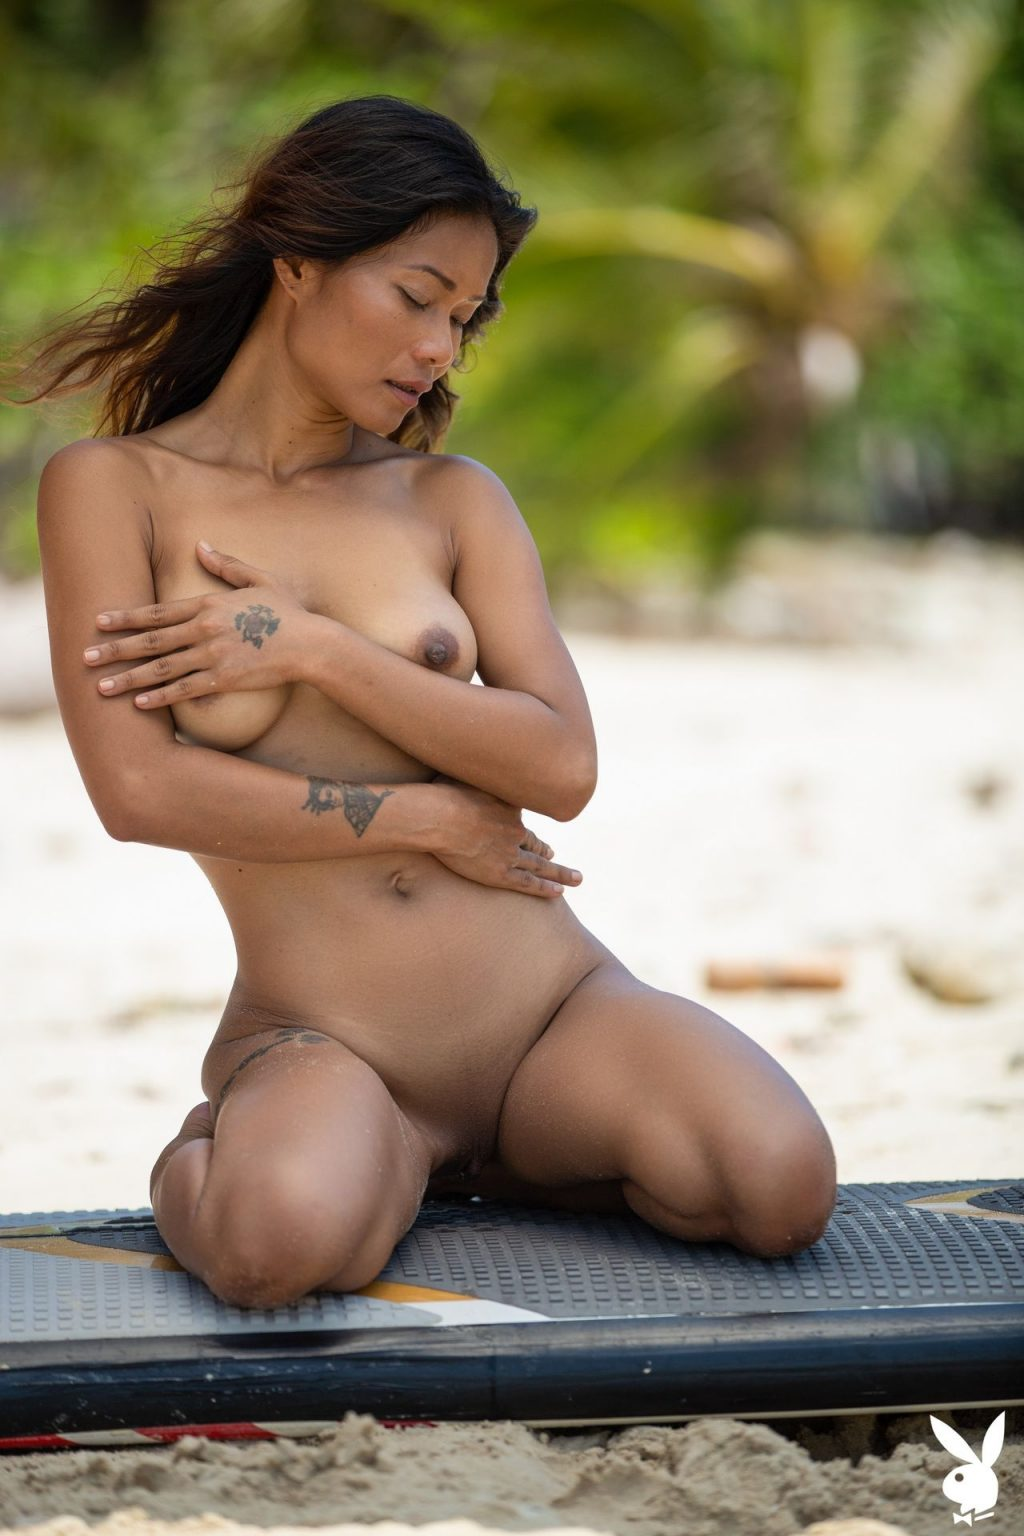 Maki Katana Nude – Catching a Wave (34 Photos + GIFs & Video)